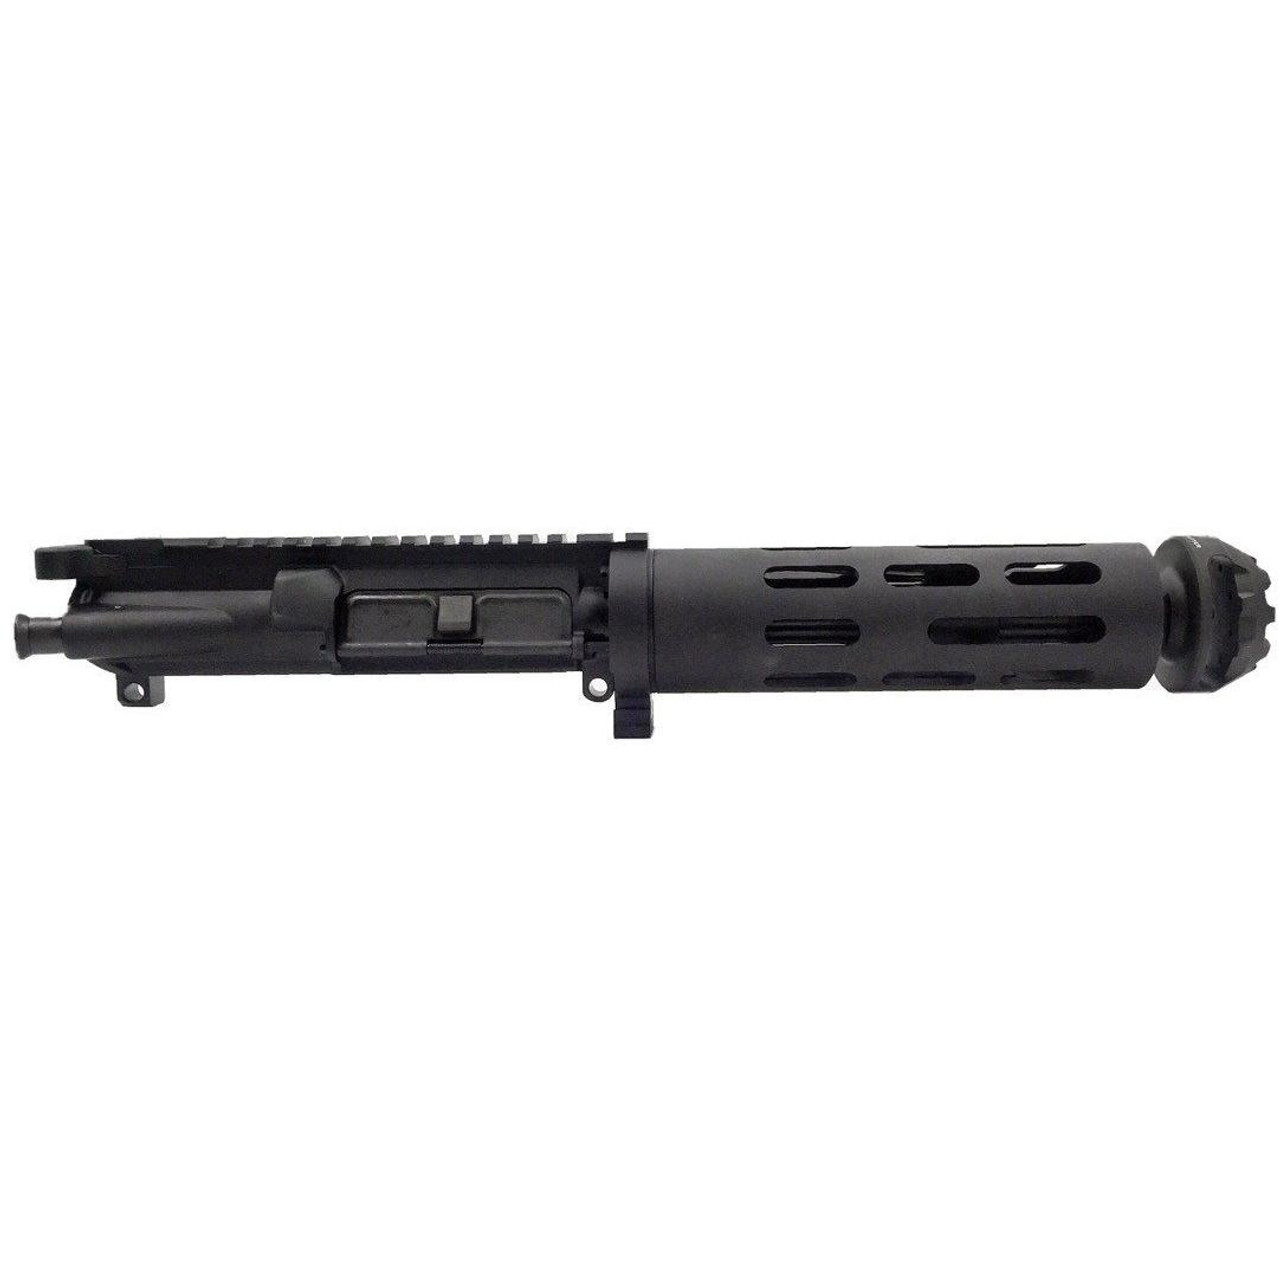 "MDX Arms 7.5"" with Cookie Cutter DOLOS QD Take Down Complete Upper (.223Wylde/300BO)"